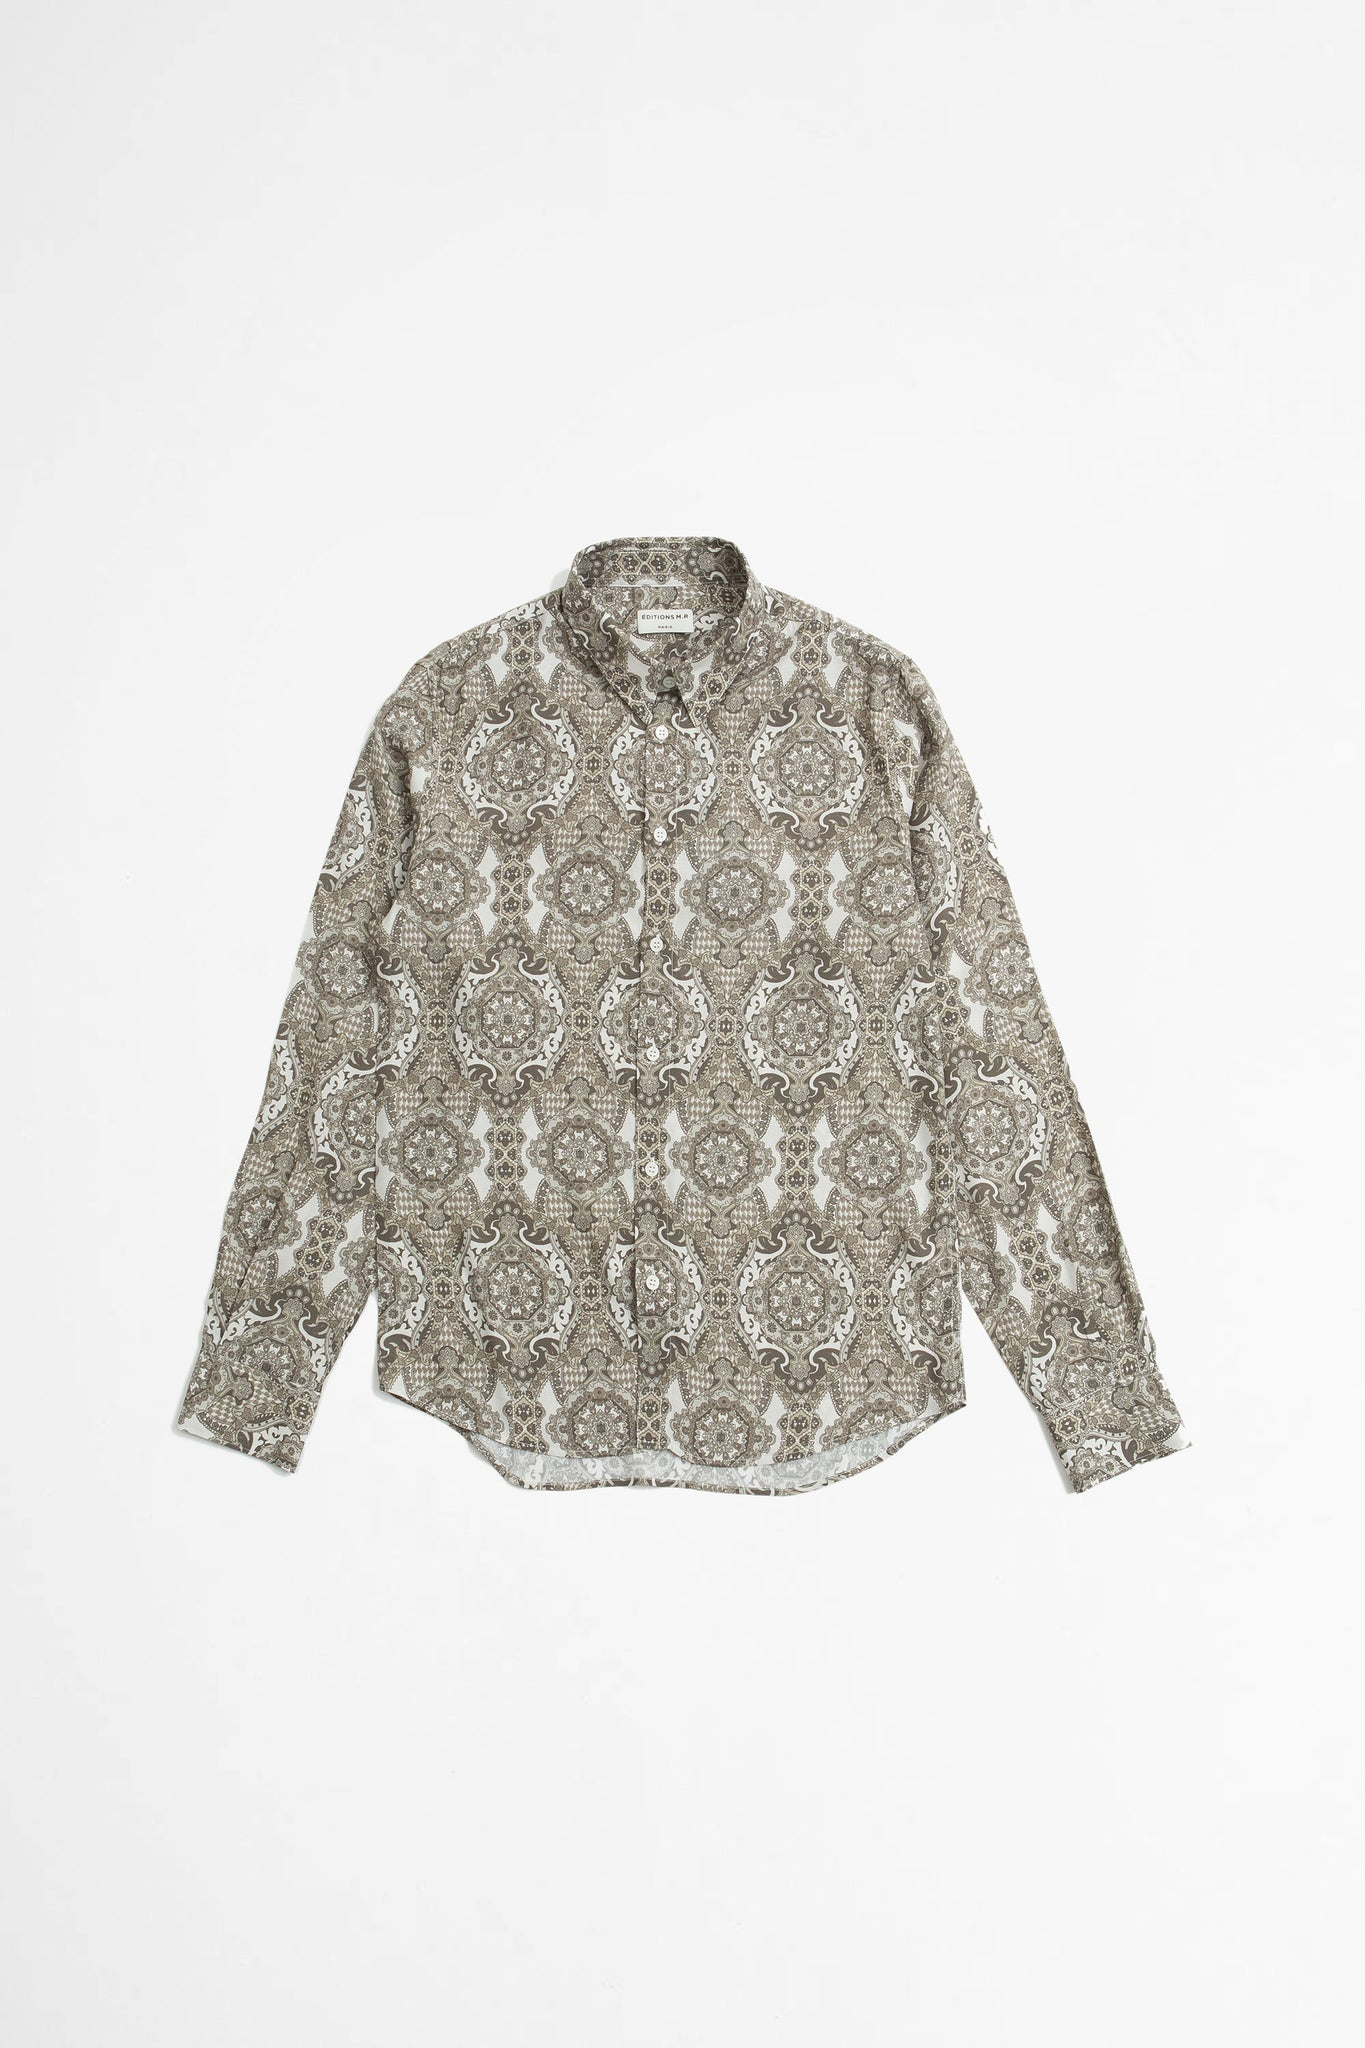 Shirt st germain monochrome